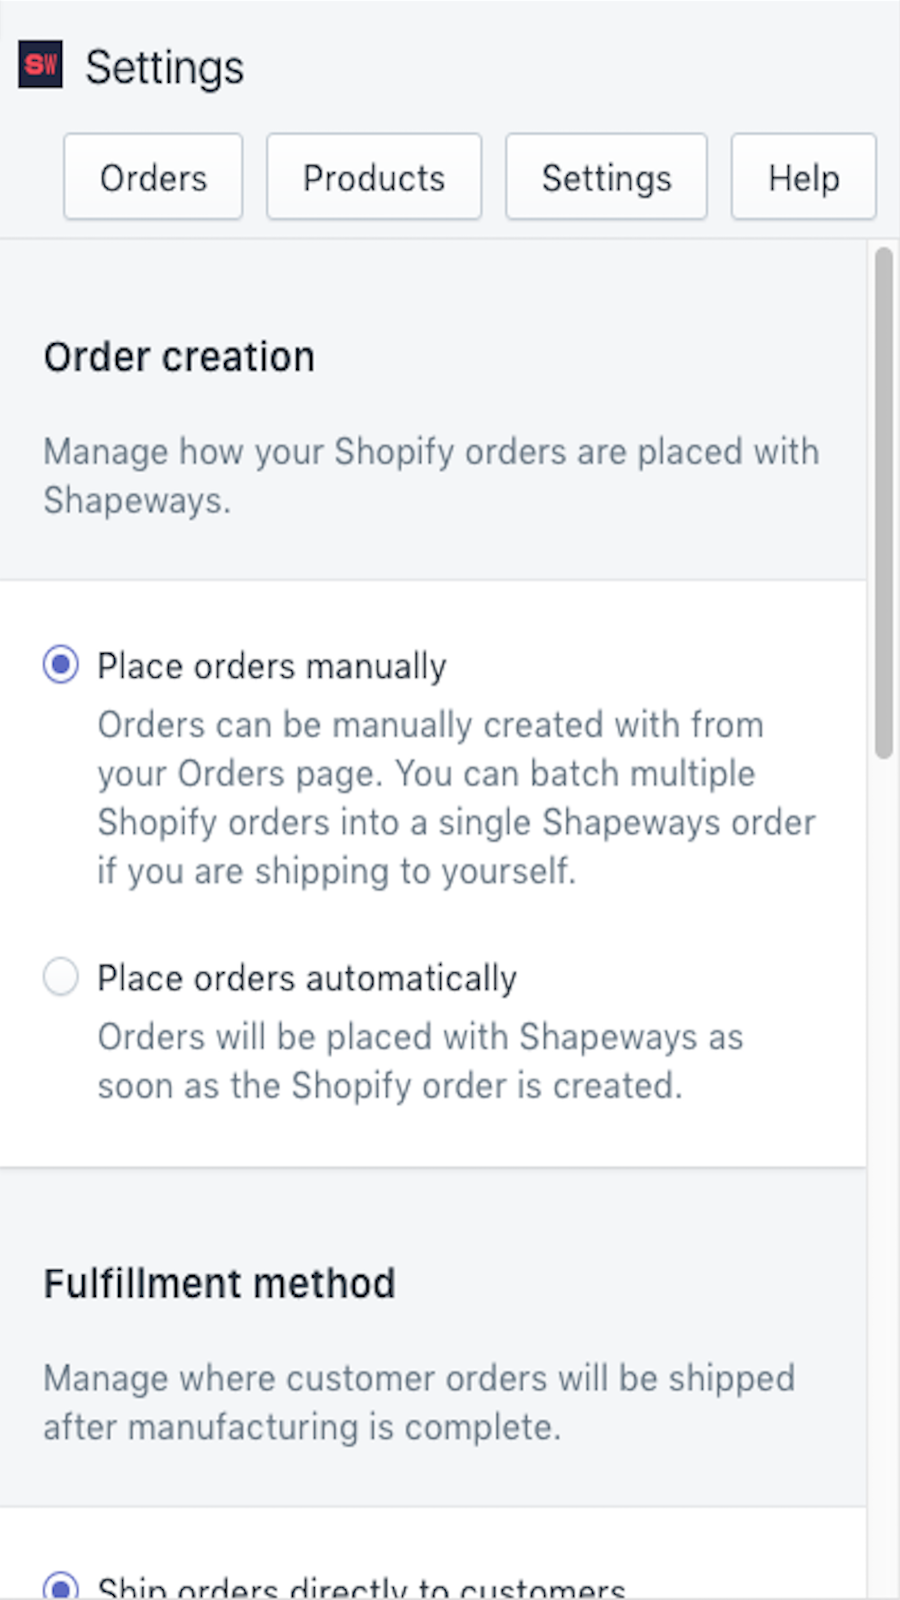 Mobile View of Shapeways Fulfillment Shopify App Settings Page